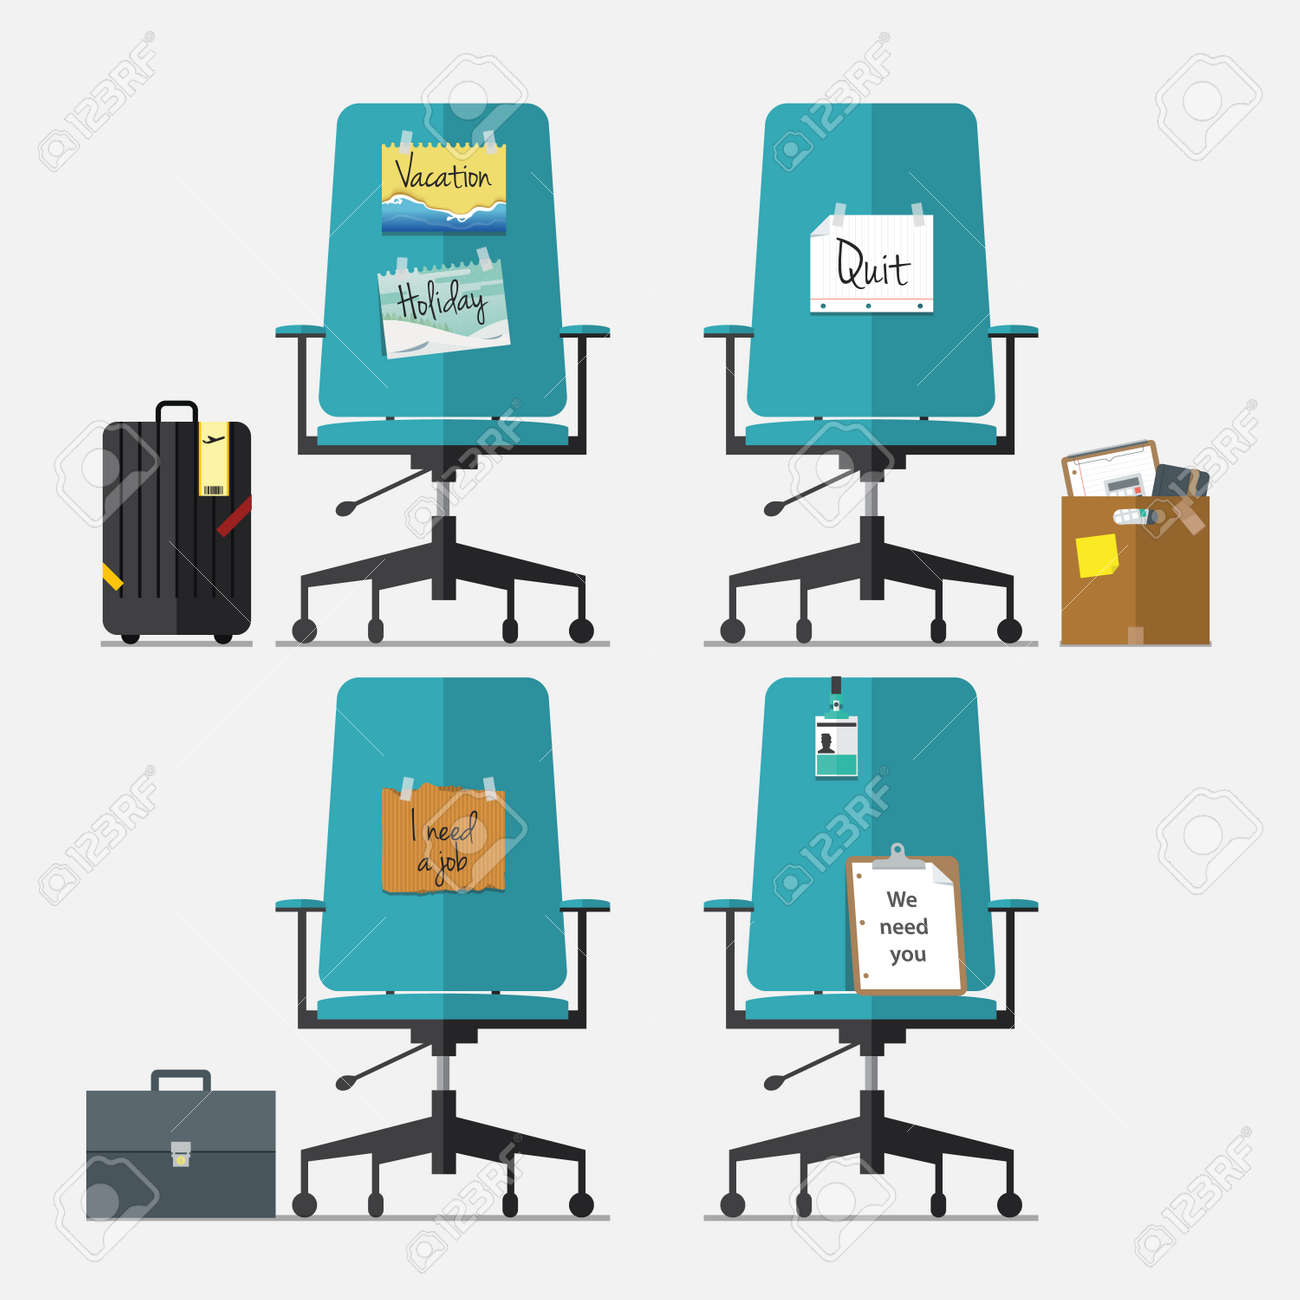 Set of office chair in flat design with resign message, vacation or holiday message, I need a job message and we need you message, Vector, Illustration - 35613627